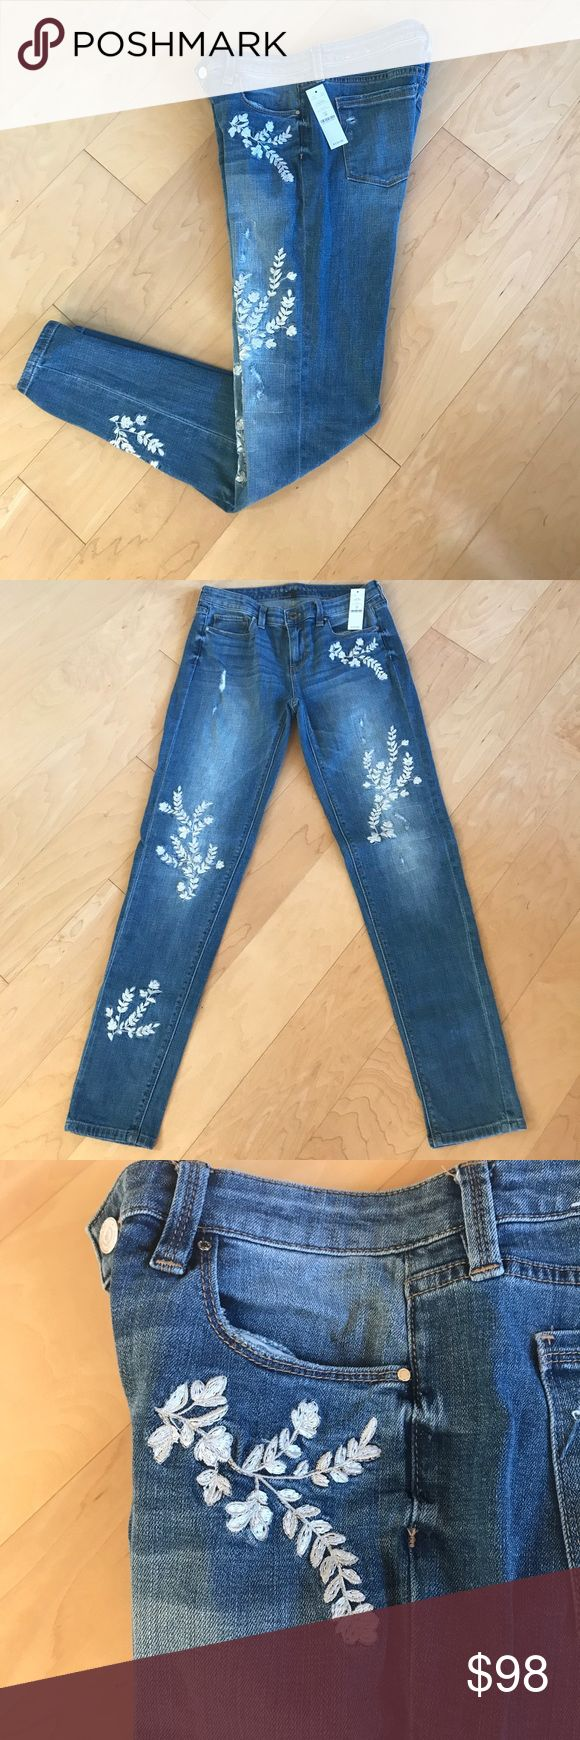 Adorable Jeans ! No longer available No longer available in stores or online! Girlfriend jeans from WHBM! Only worn twice! Size 2 R but fits like a 4R. Denim medium wash White House Black Market Jeans Boyfriend